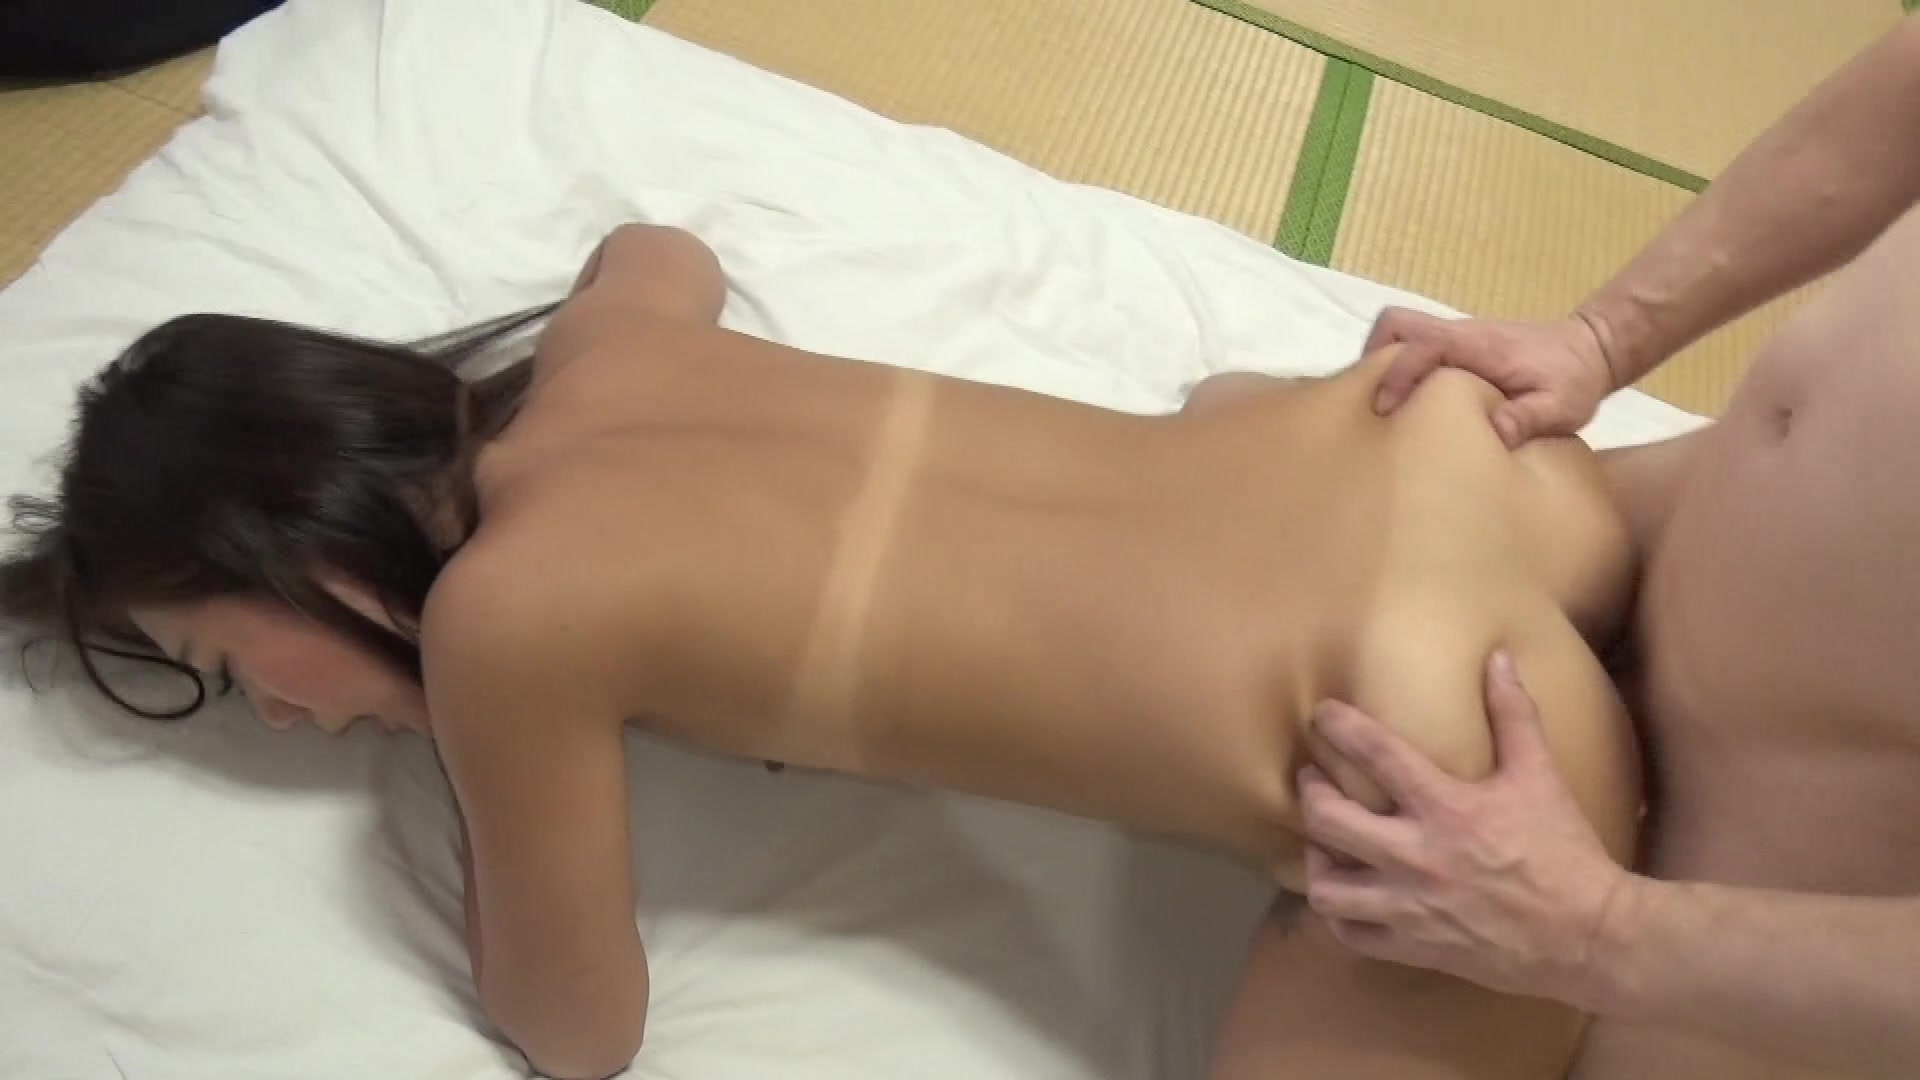 Teen girls solo nude for free